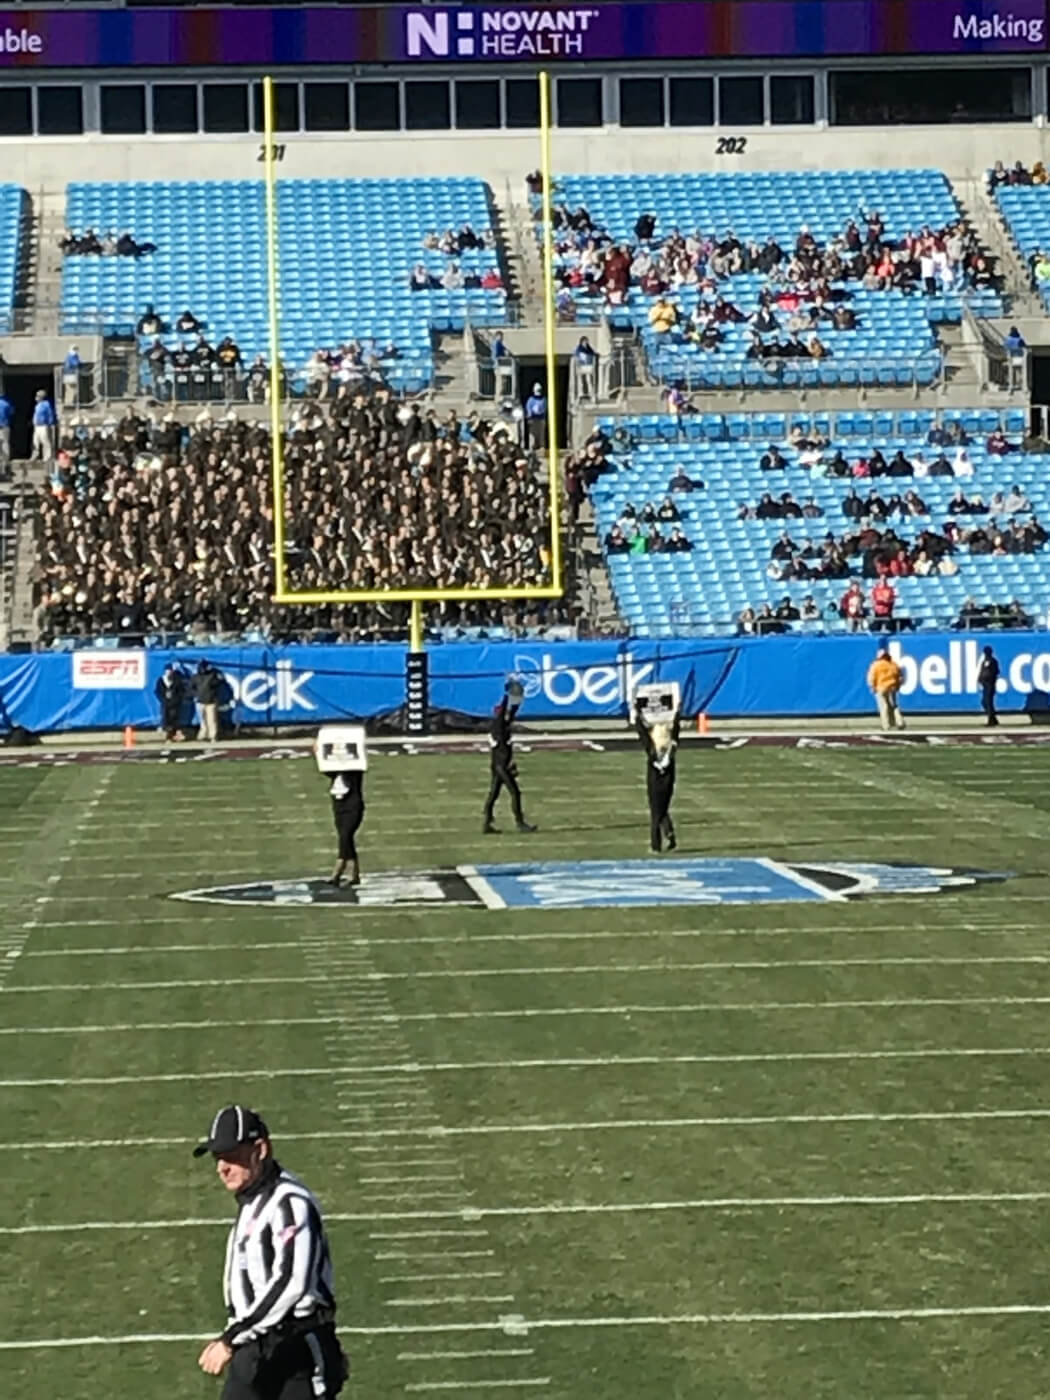 VIDEO: Dog-Experiment Protesters Arrested on Belk Bowl Field